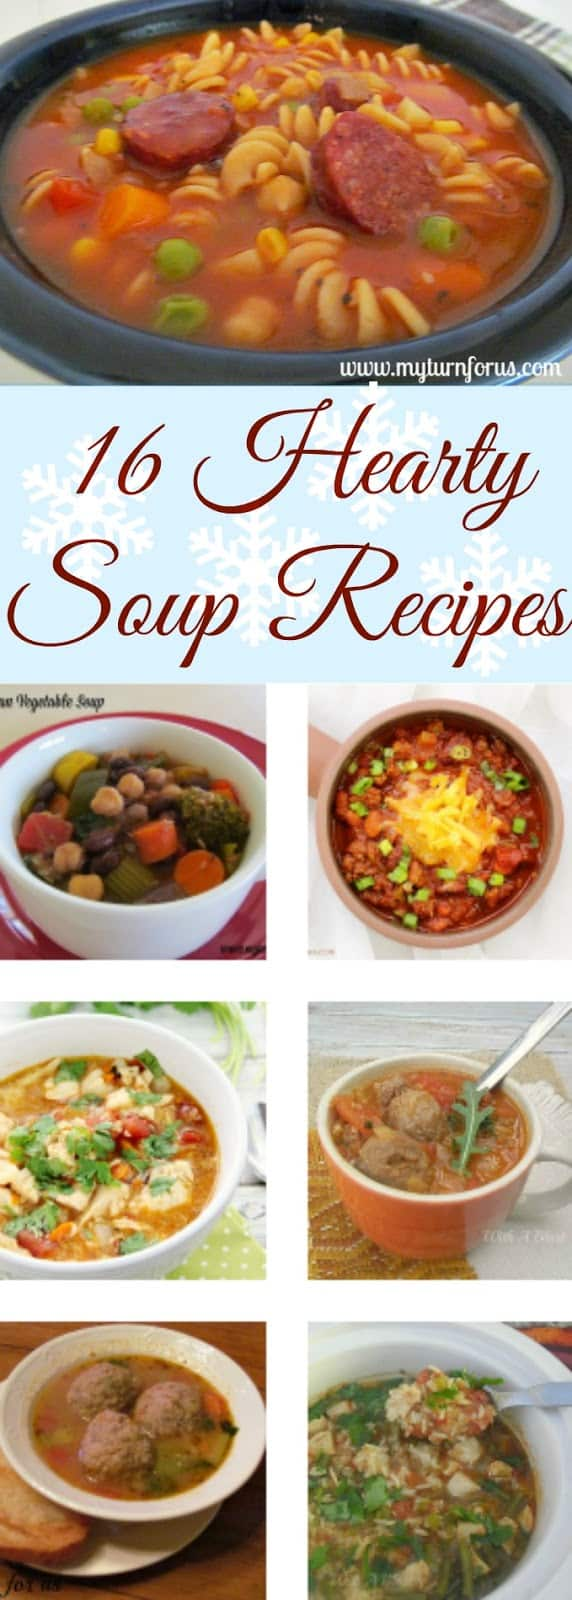 16 Hearty Soup Recipes all family tried, tested and approved - most are long time favorites and all perfect during Fall and Winter #SoupRecipes #HeartySoupRecipes #ComfortFood #Soup